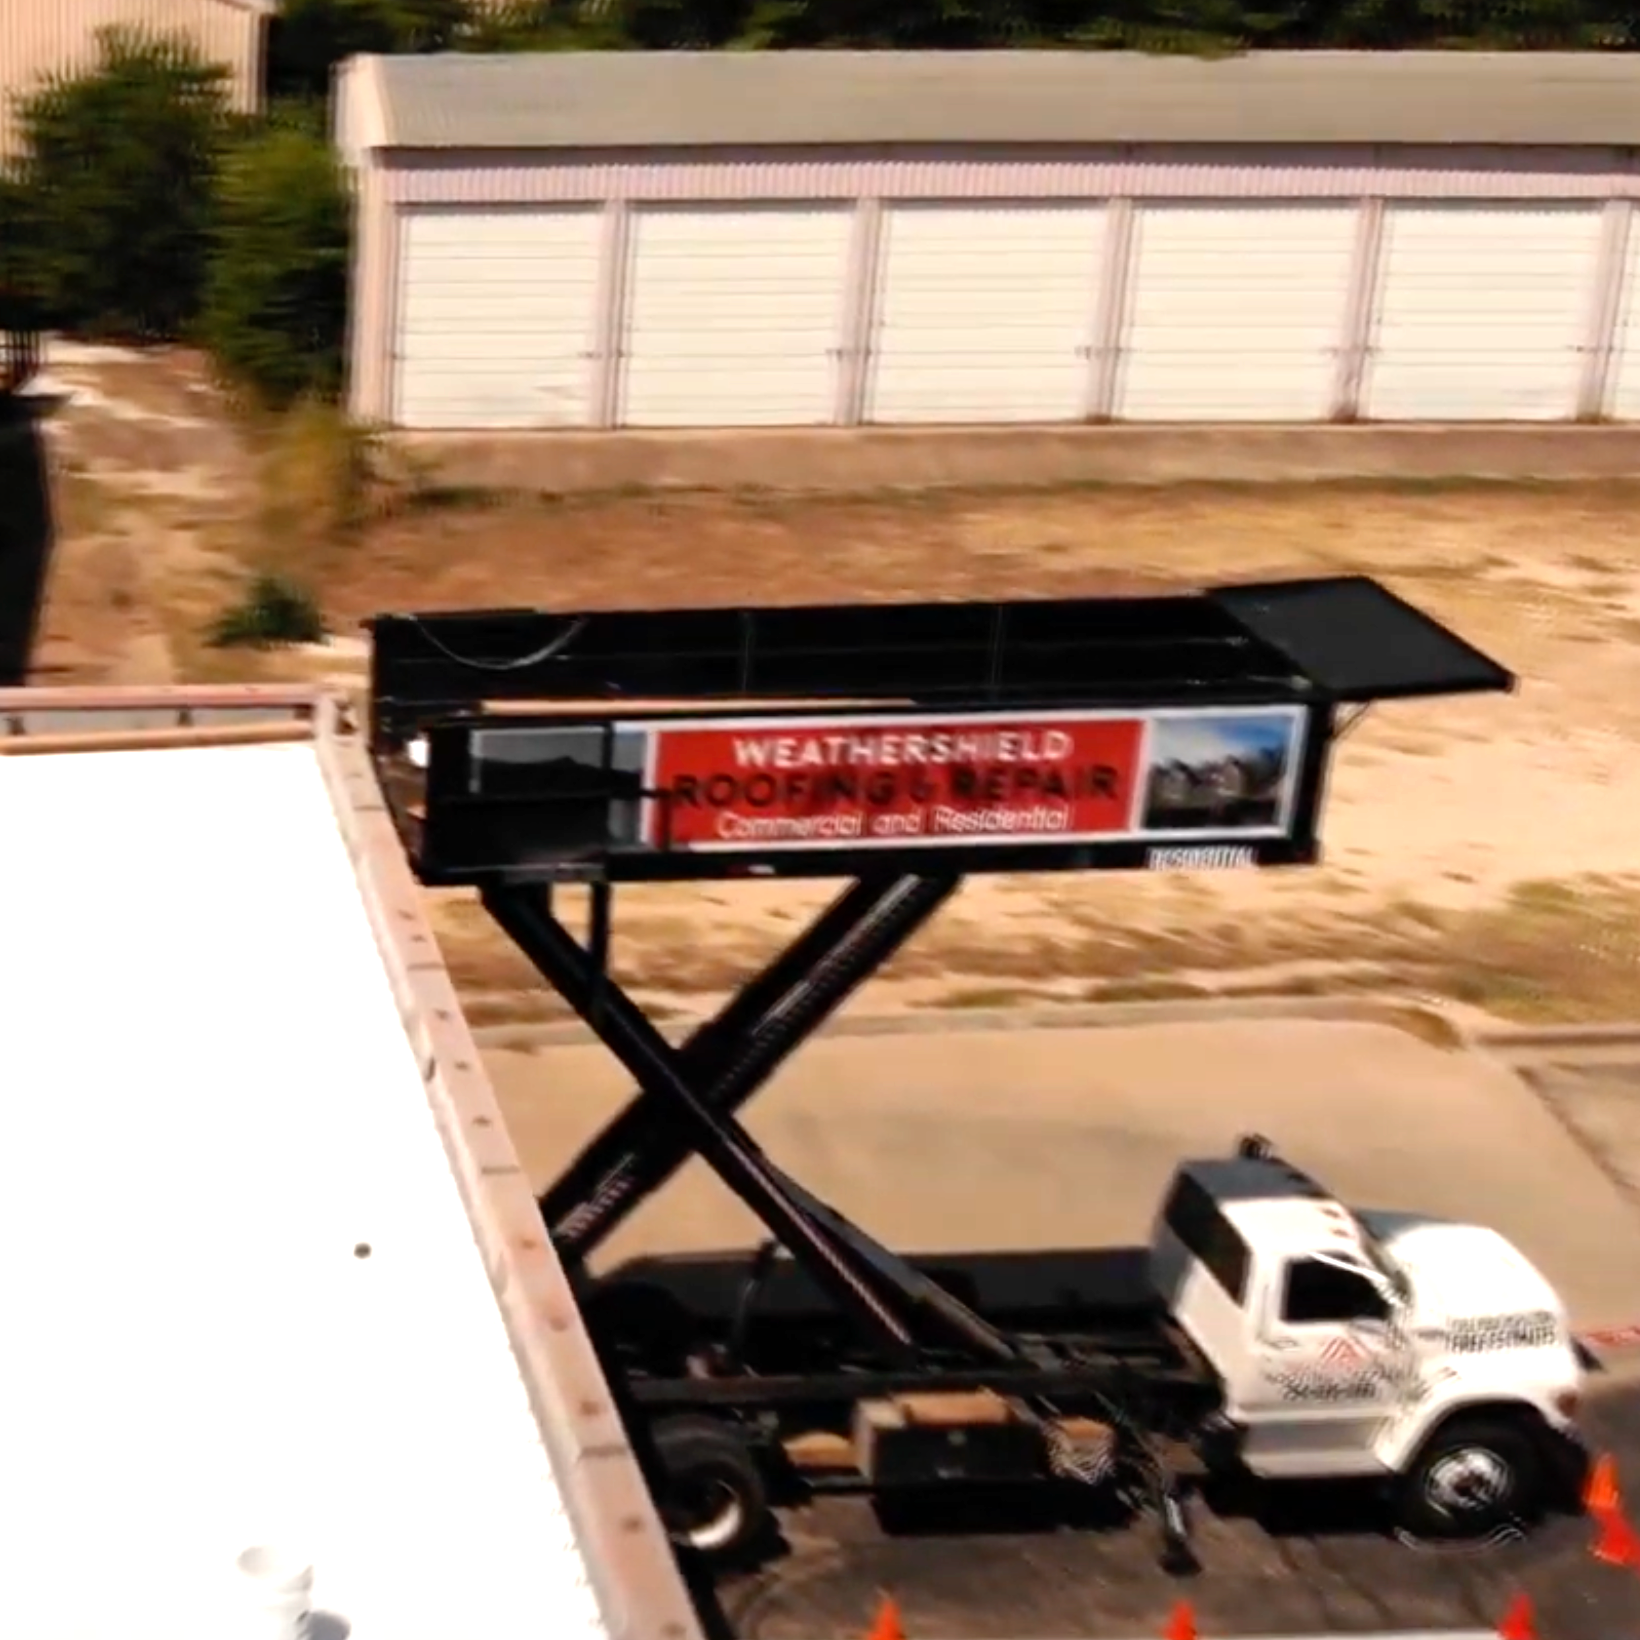 Truck and Crew loading supplies on top of a building